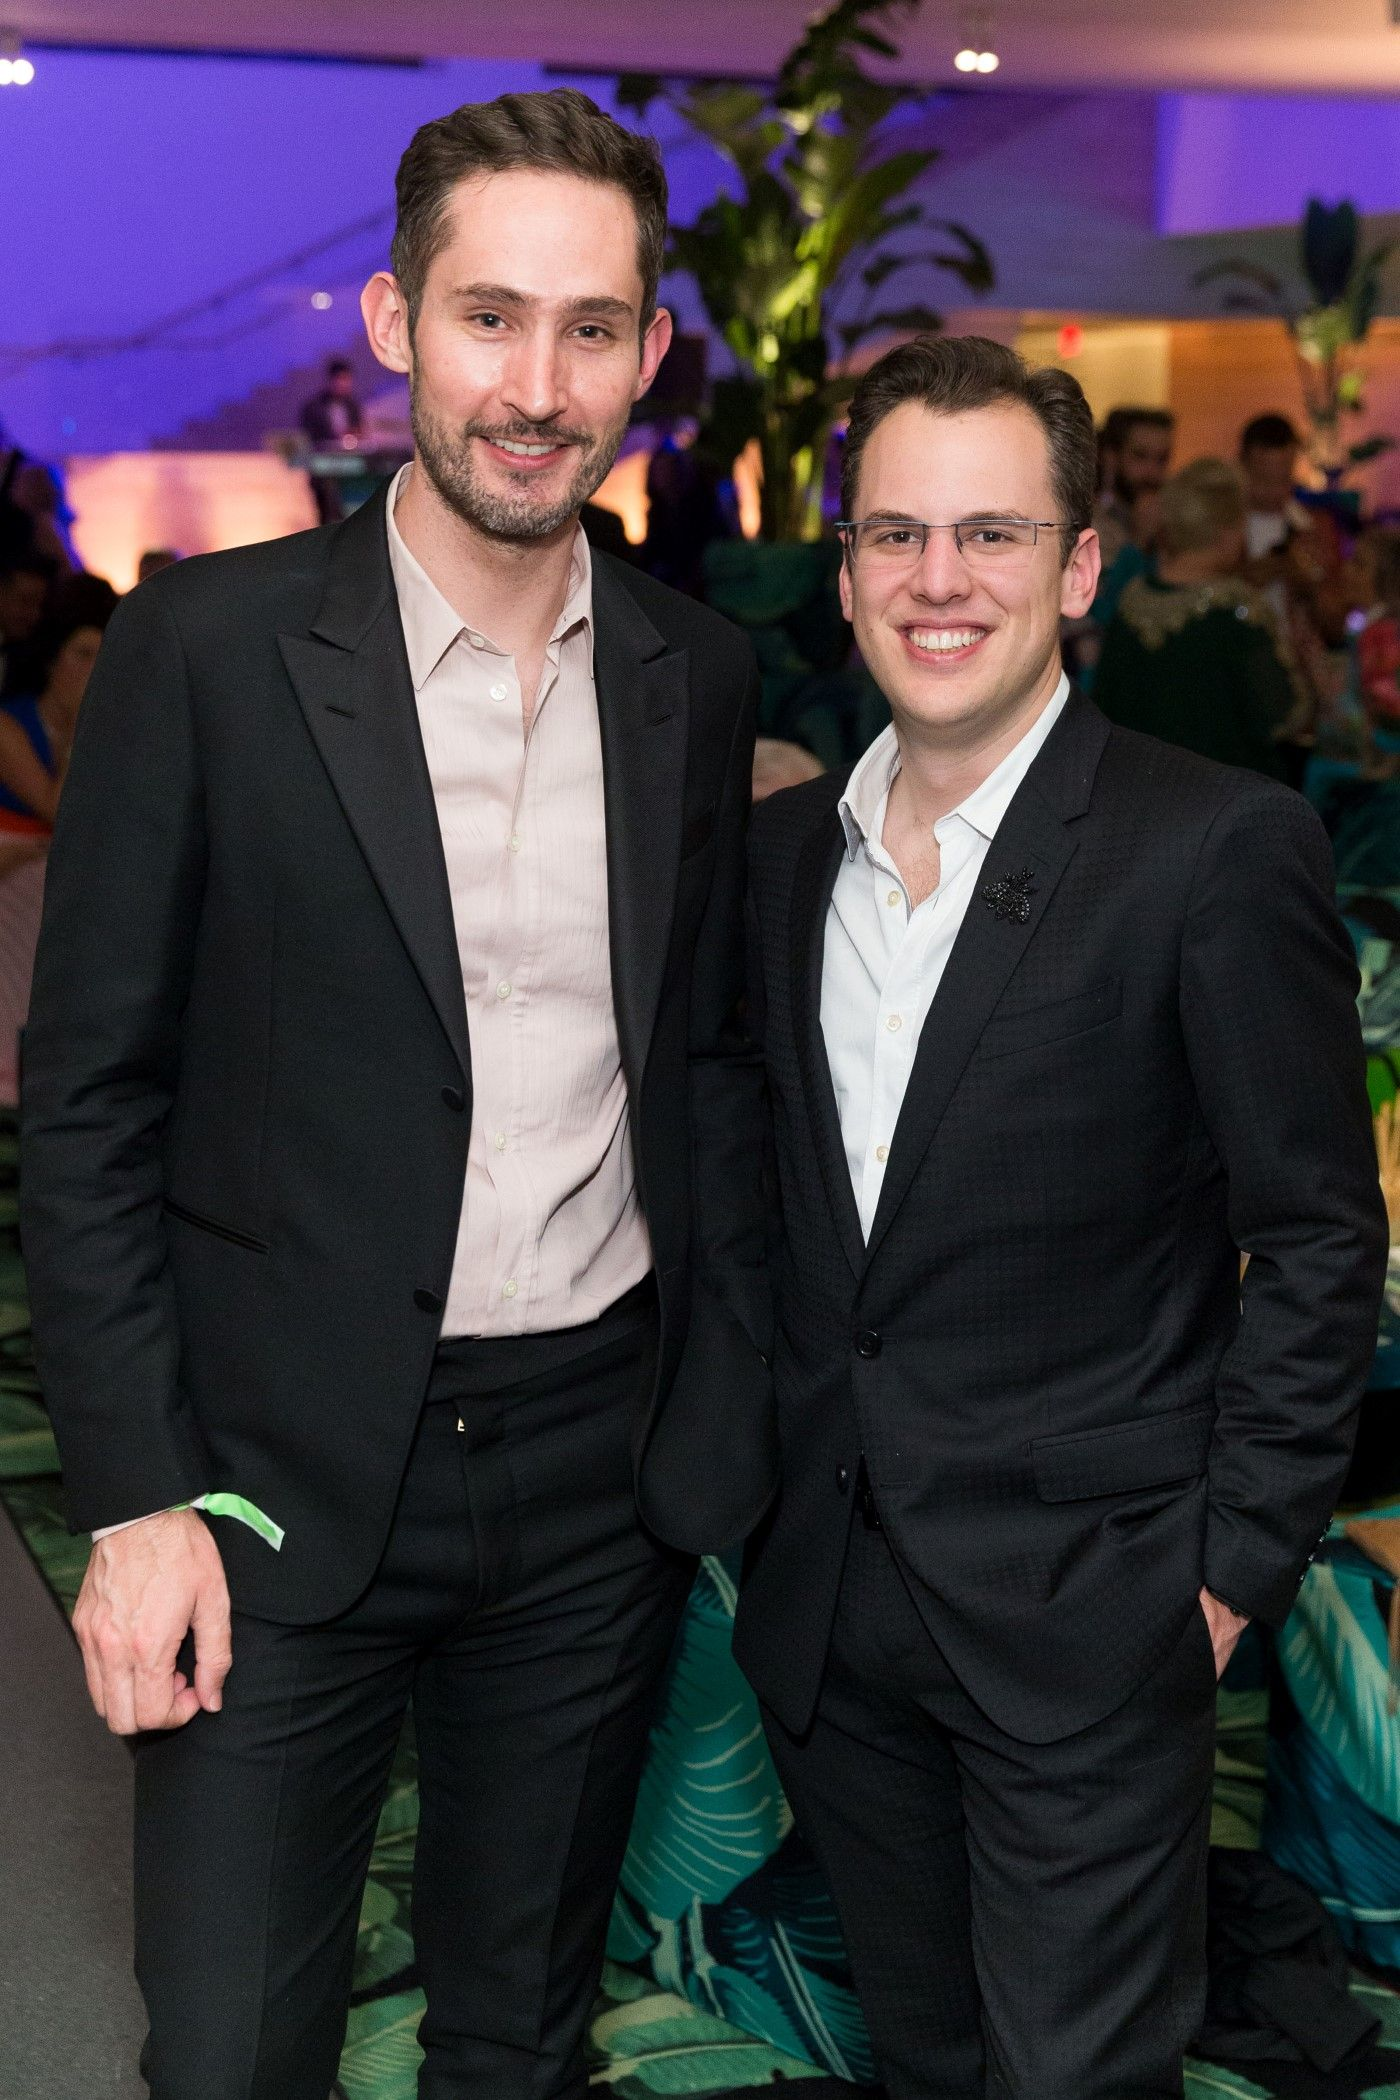 Instagram's Kevin Systrom and Mike Krieger